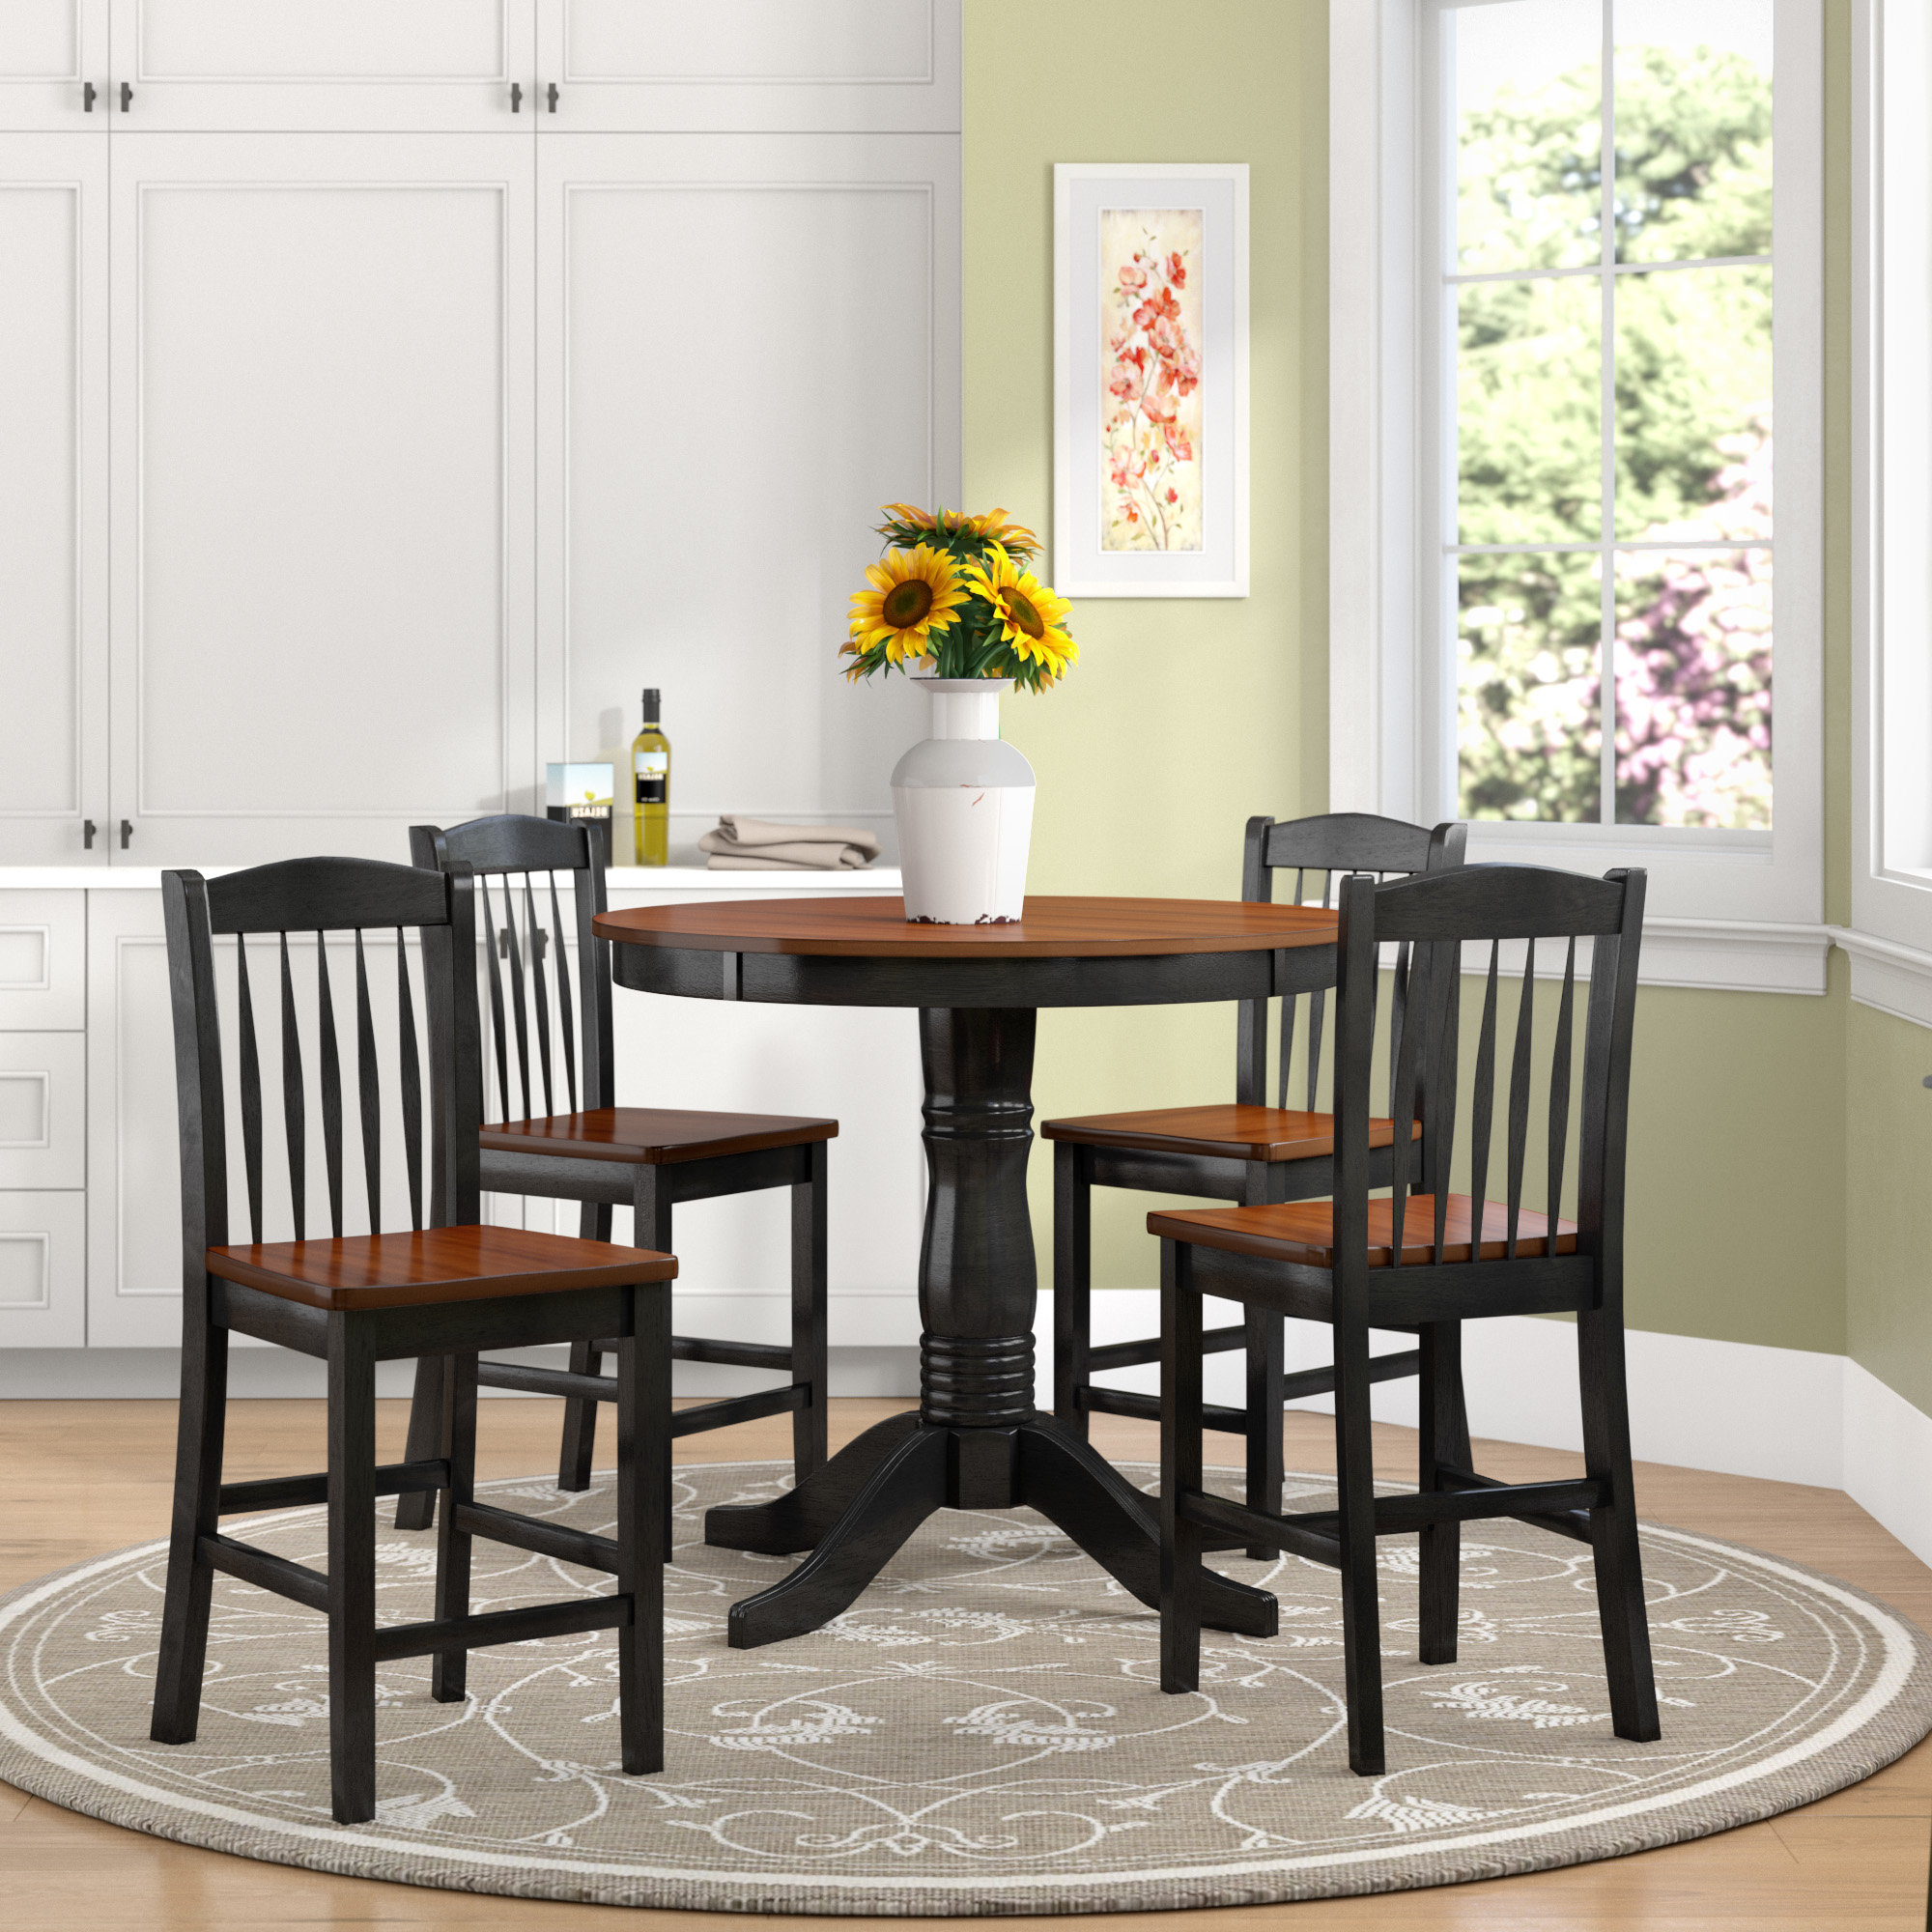 Fashionable Pattonsburg 5 Piece Dining Sets With Regard To August Grove Tighe 5 Piece Dining Set & Reviews (View 2 of 25)